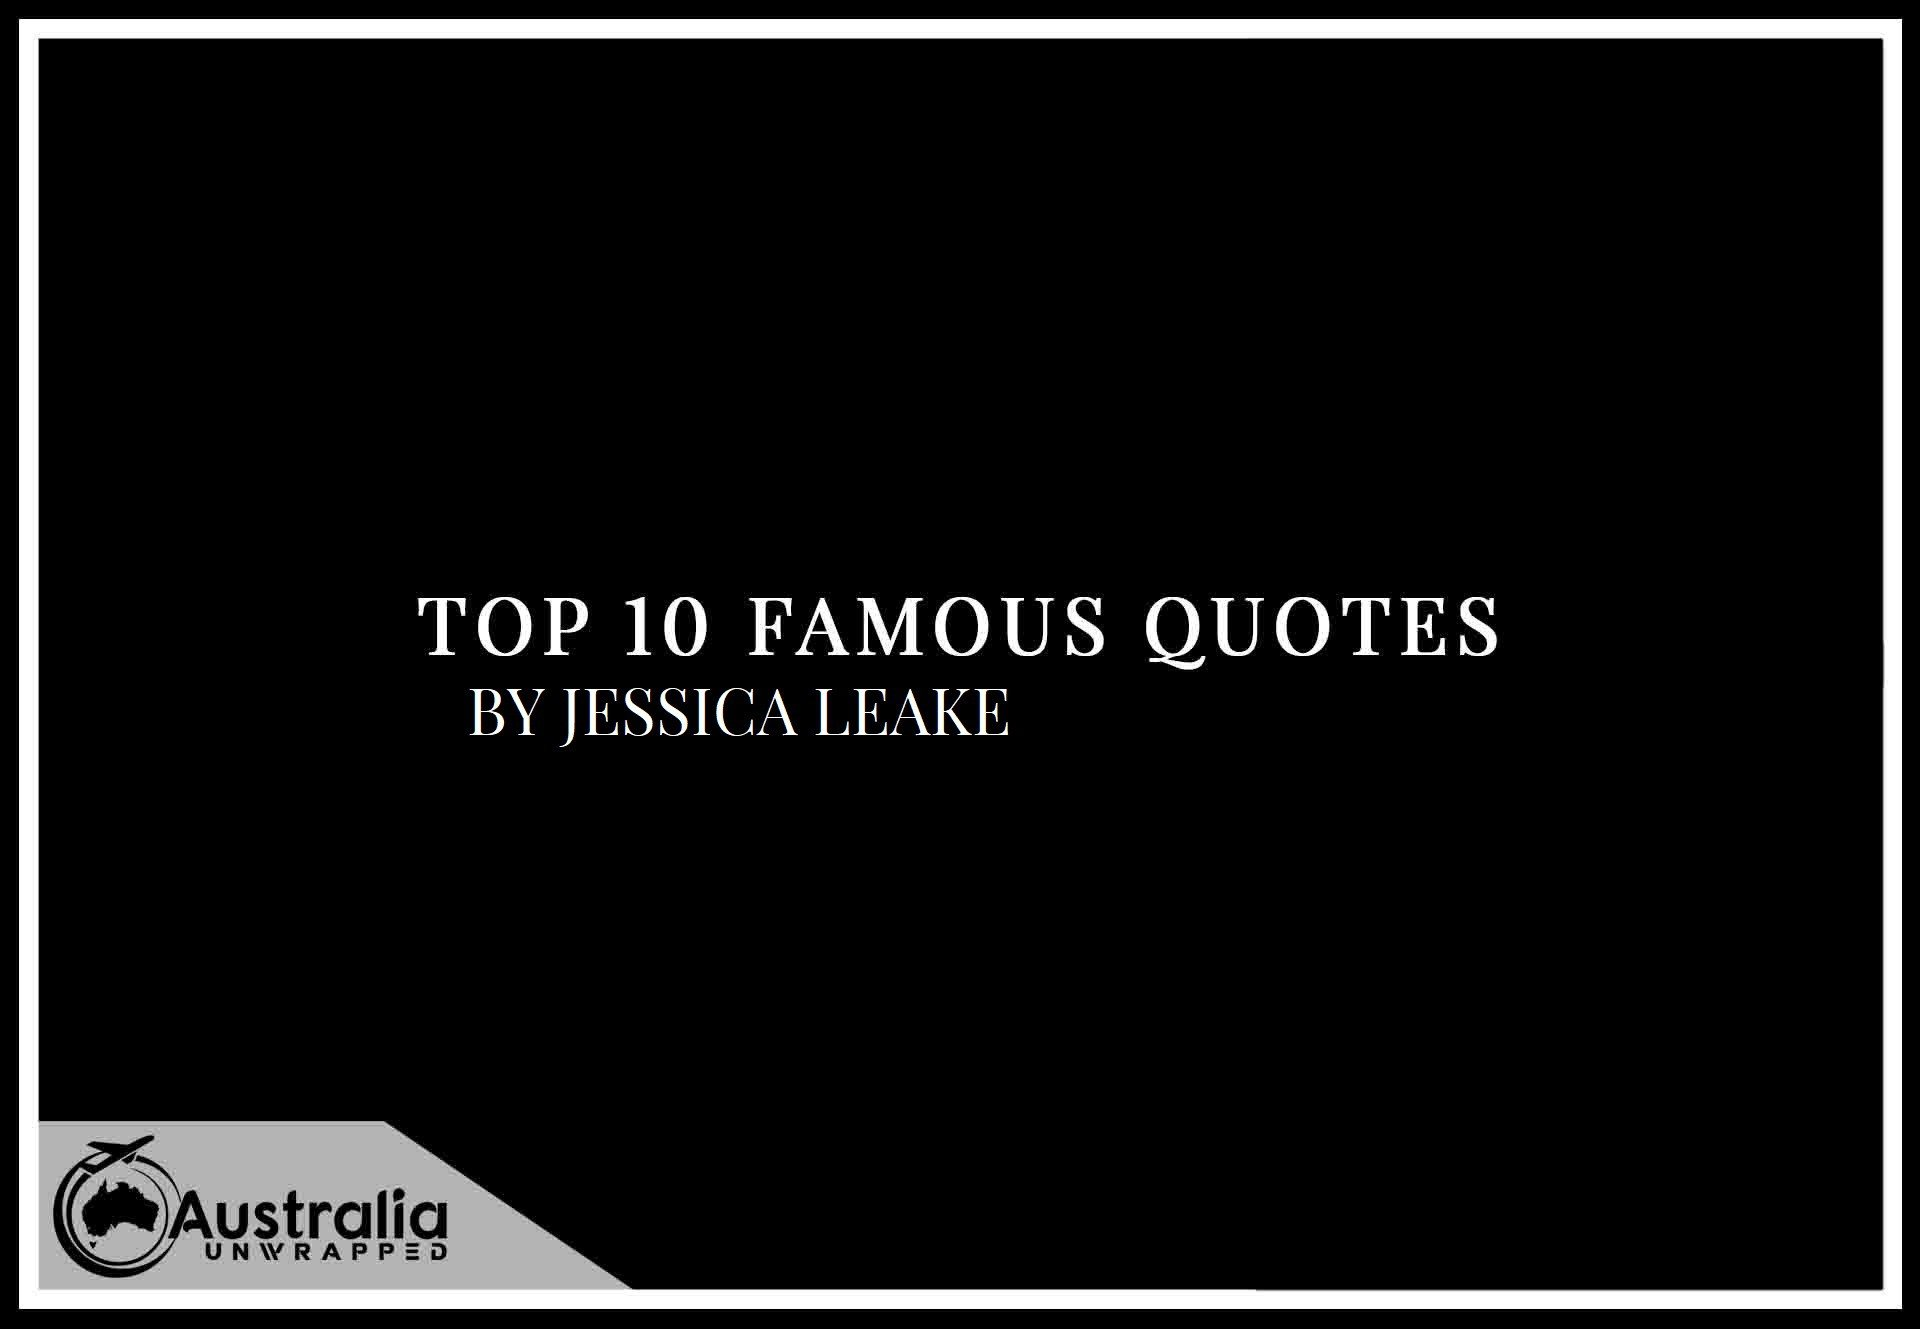 Top 10 Famous Quotes by Author Jessica Leake